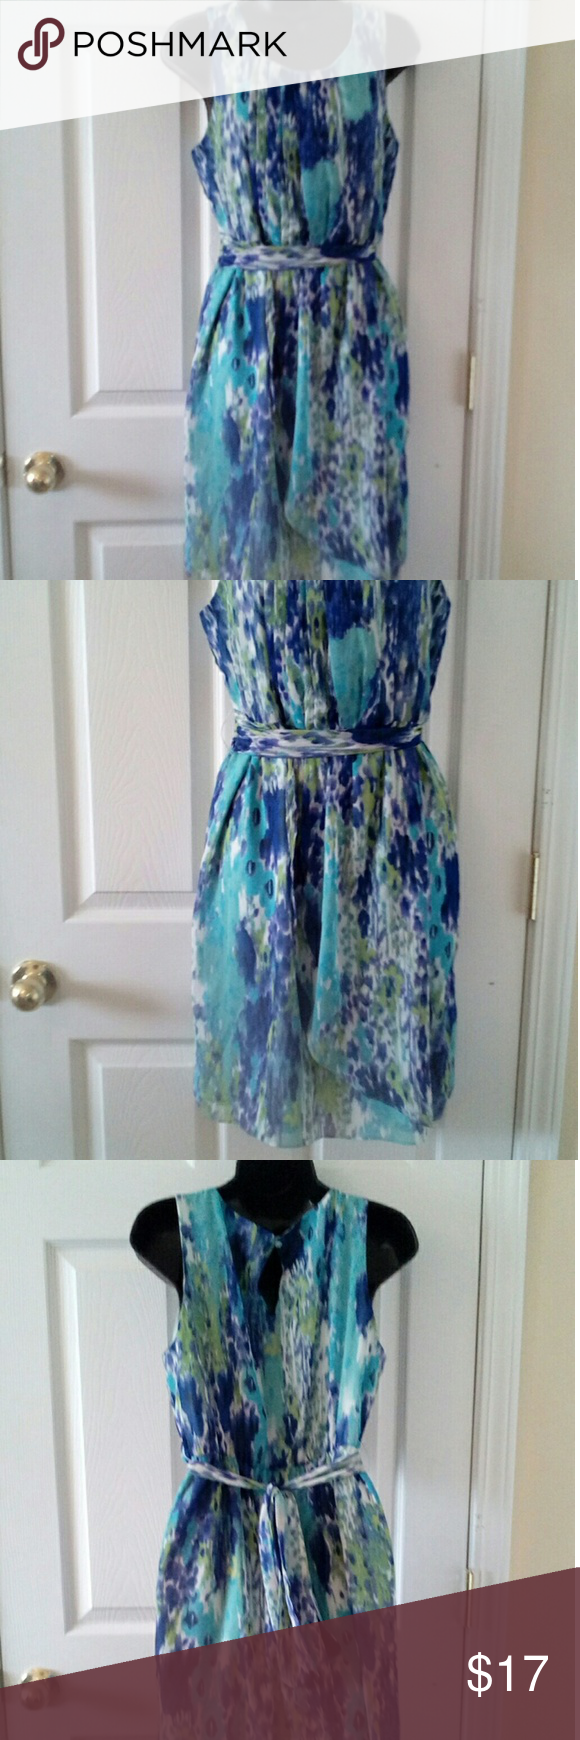 "Apt. 9 sleeveless dress sz Med Beautiful colors 17"" armpit to armpit 36"" length Apt. 9 Dresses"